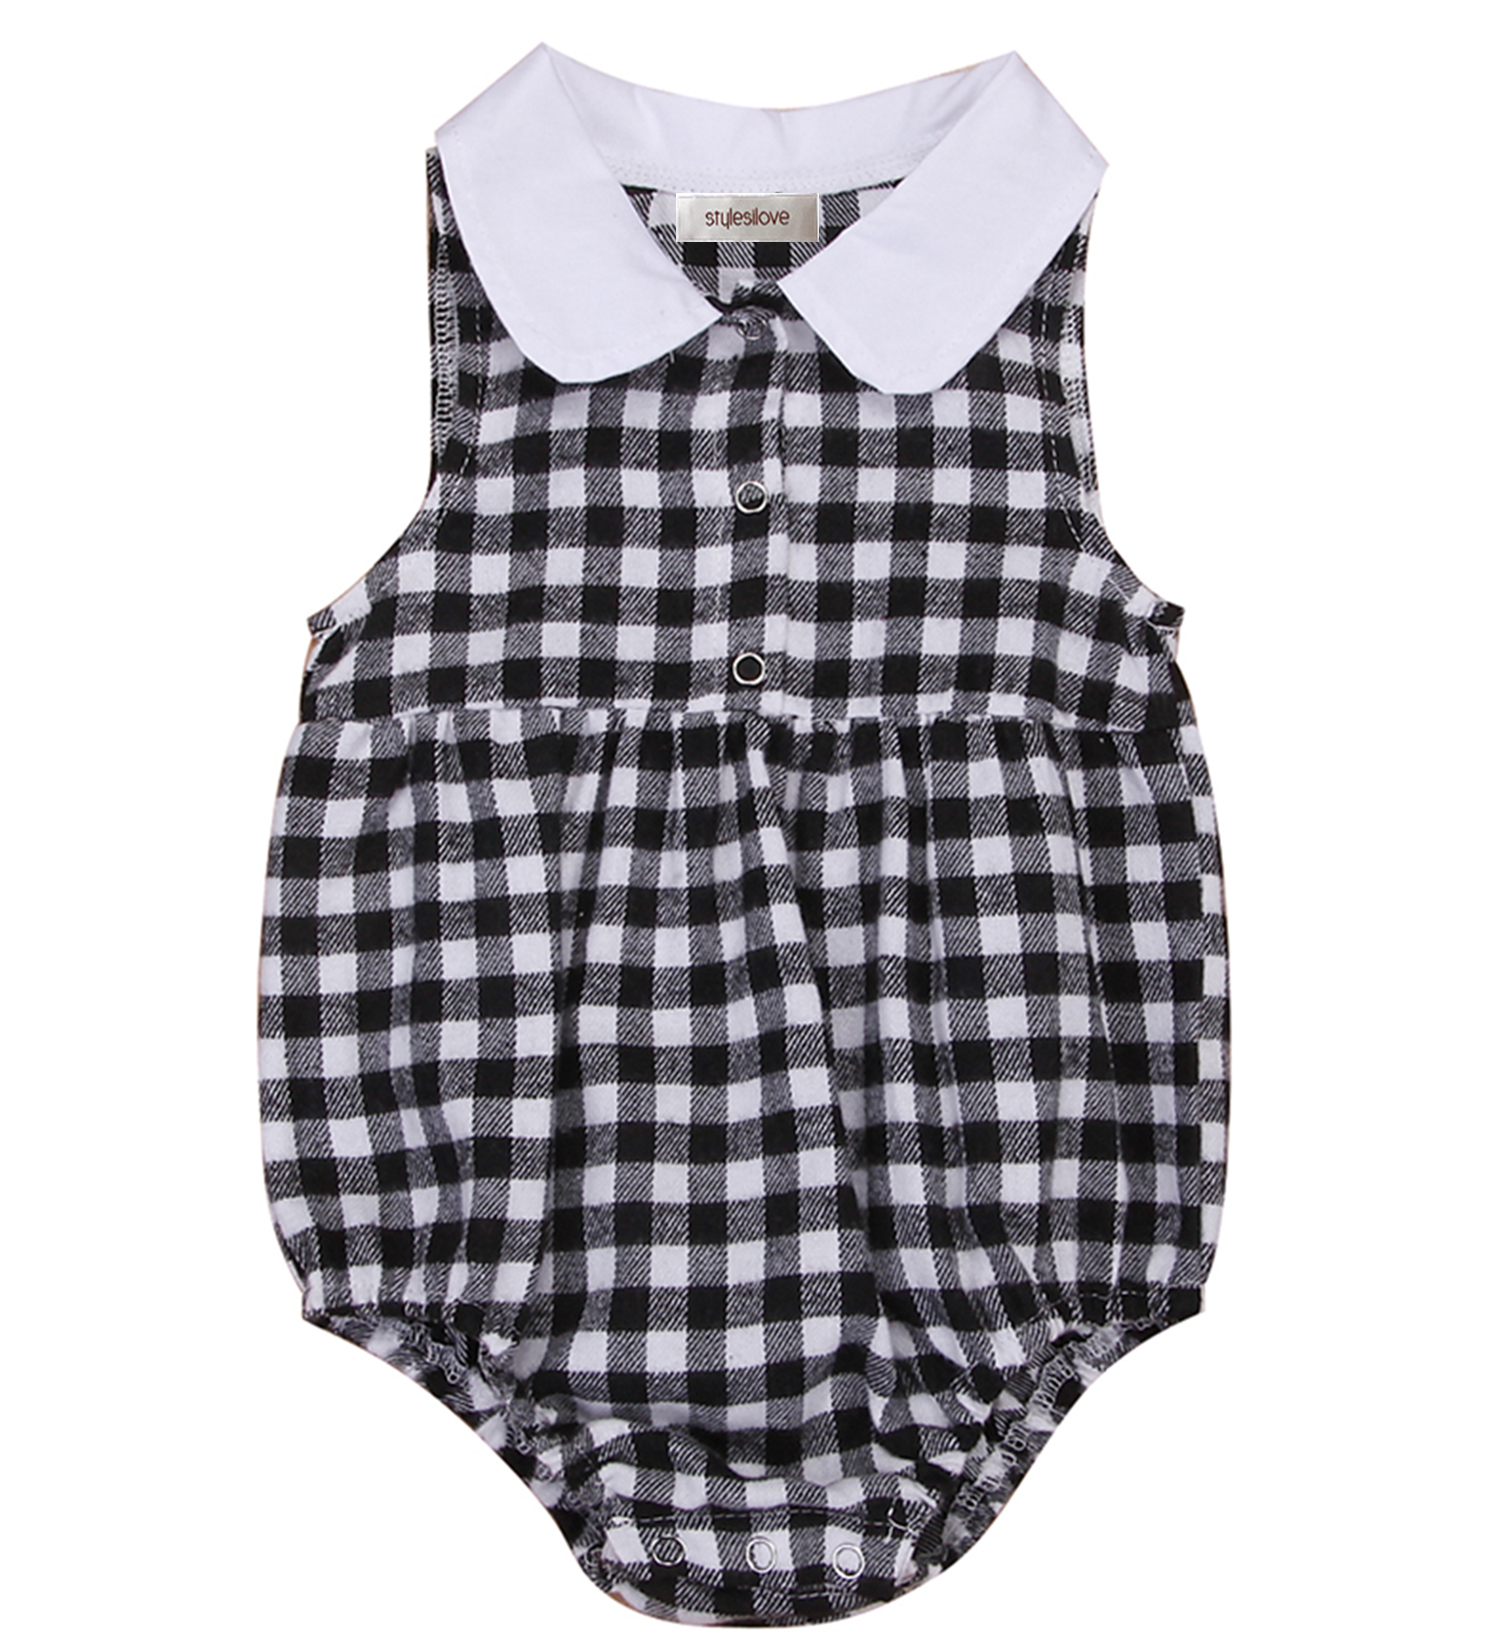 568d420f4 Styles I Love - Styles I Love Infant Baby Girl Black and White ...